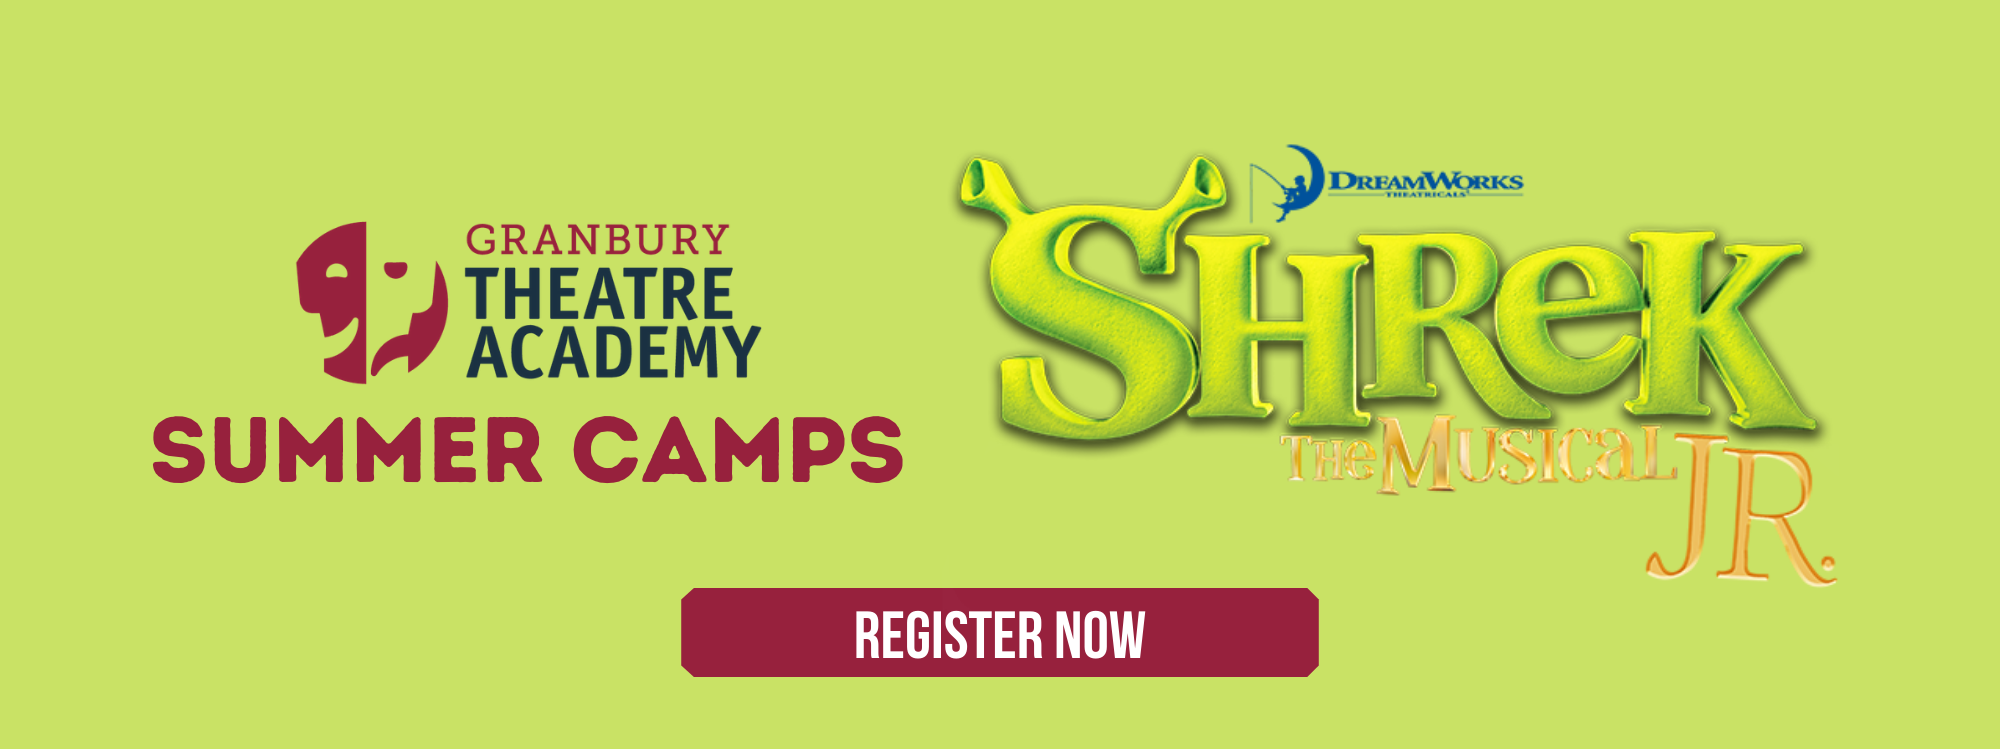 Granbury Theatre Academy Summer Camps